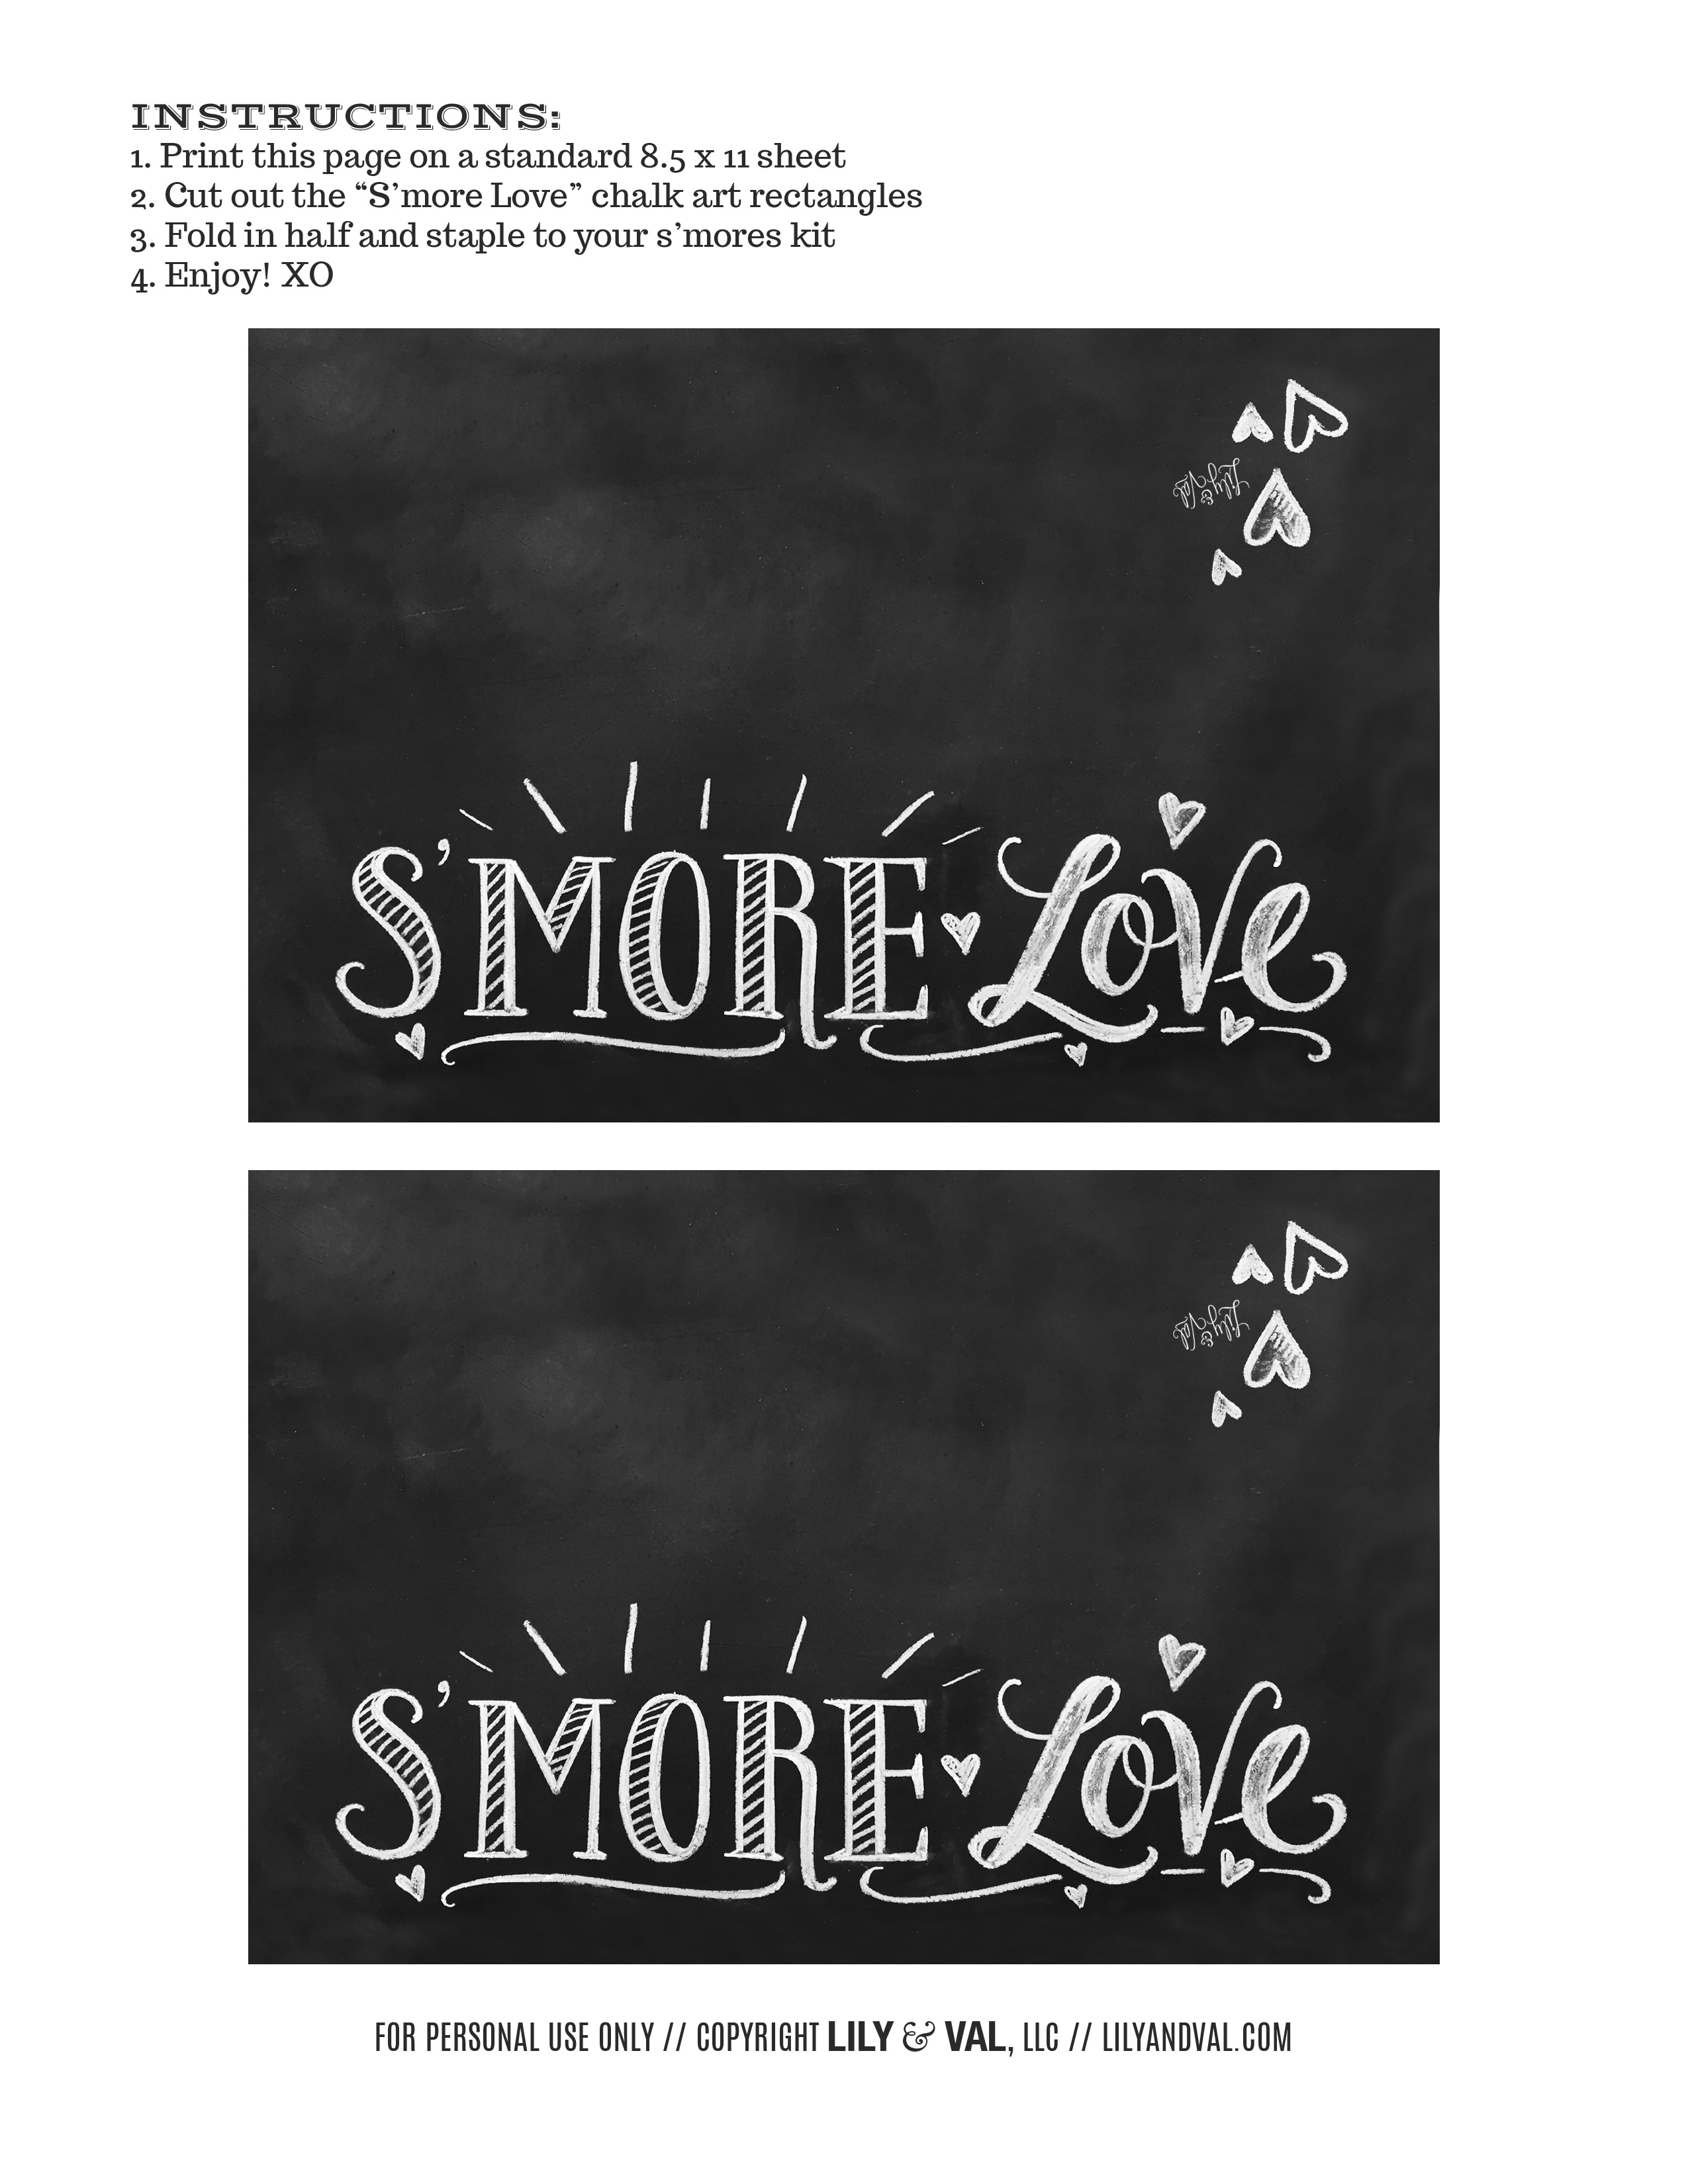 smorelove_DOWNLOADFILE_WEB